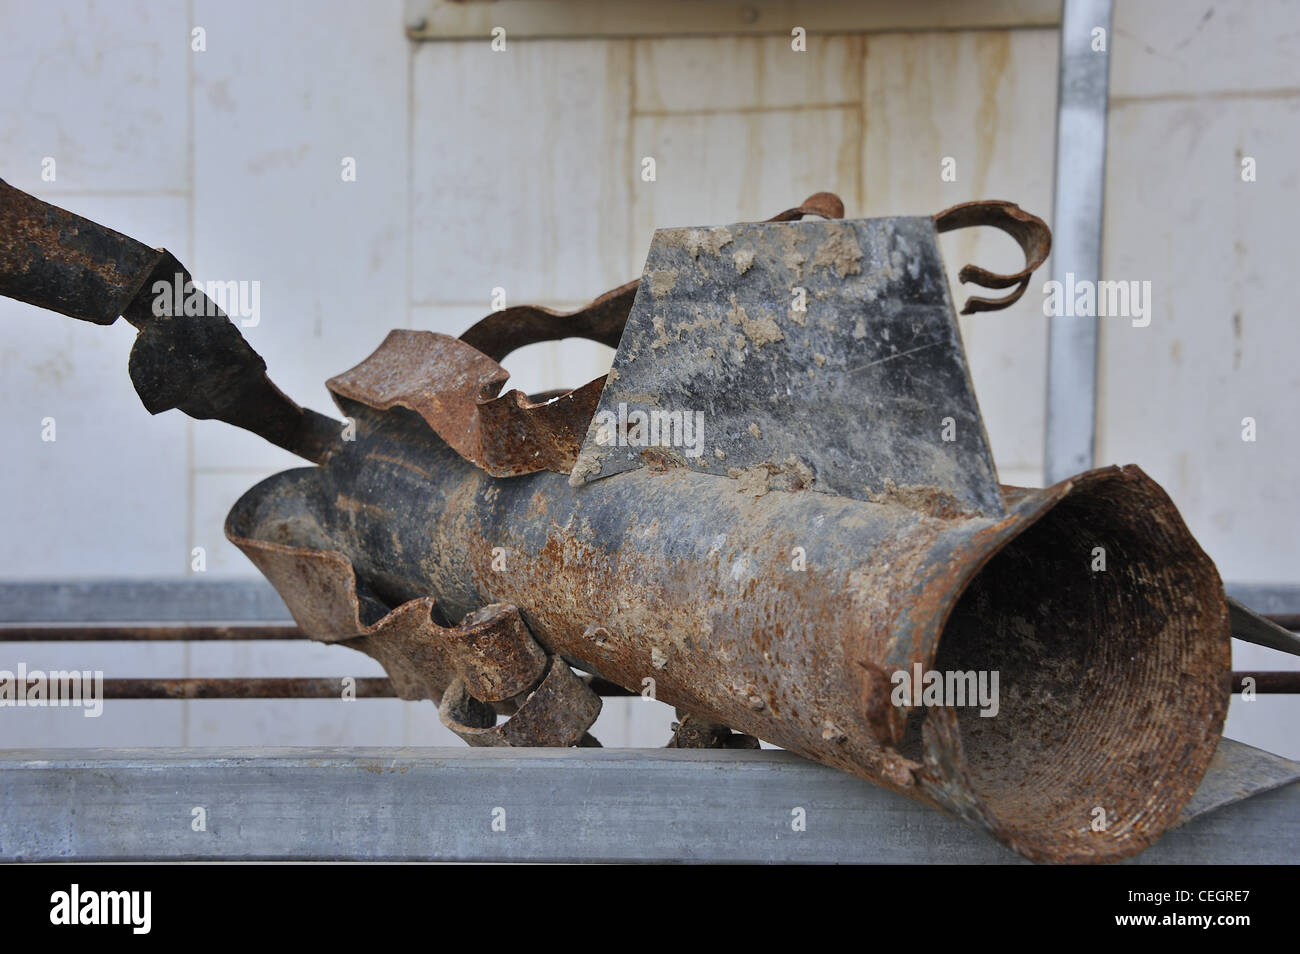 Remains of a rocket sent from Gaza strip at the city of Sderot in Israel - Stock Image